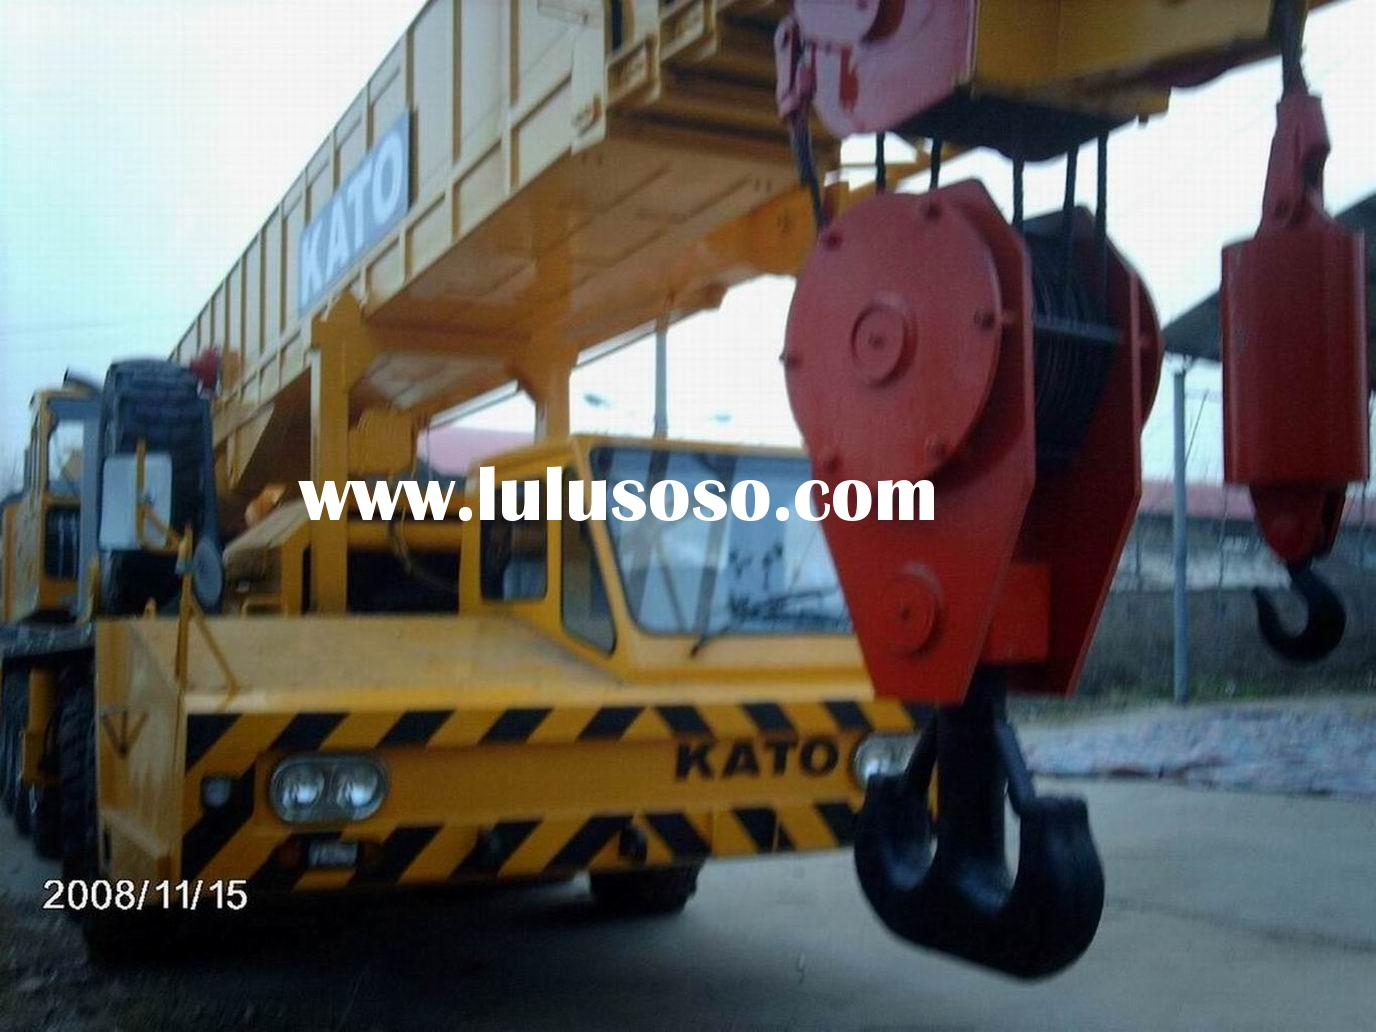 sales offer used KATO NK1200 truck crane 120 ton mobile crane cross country